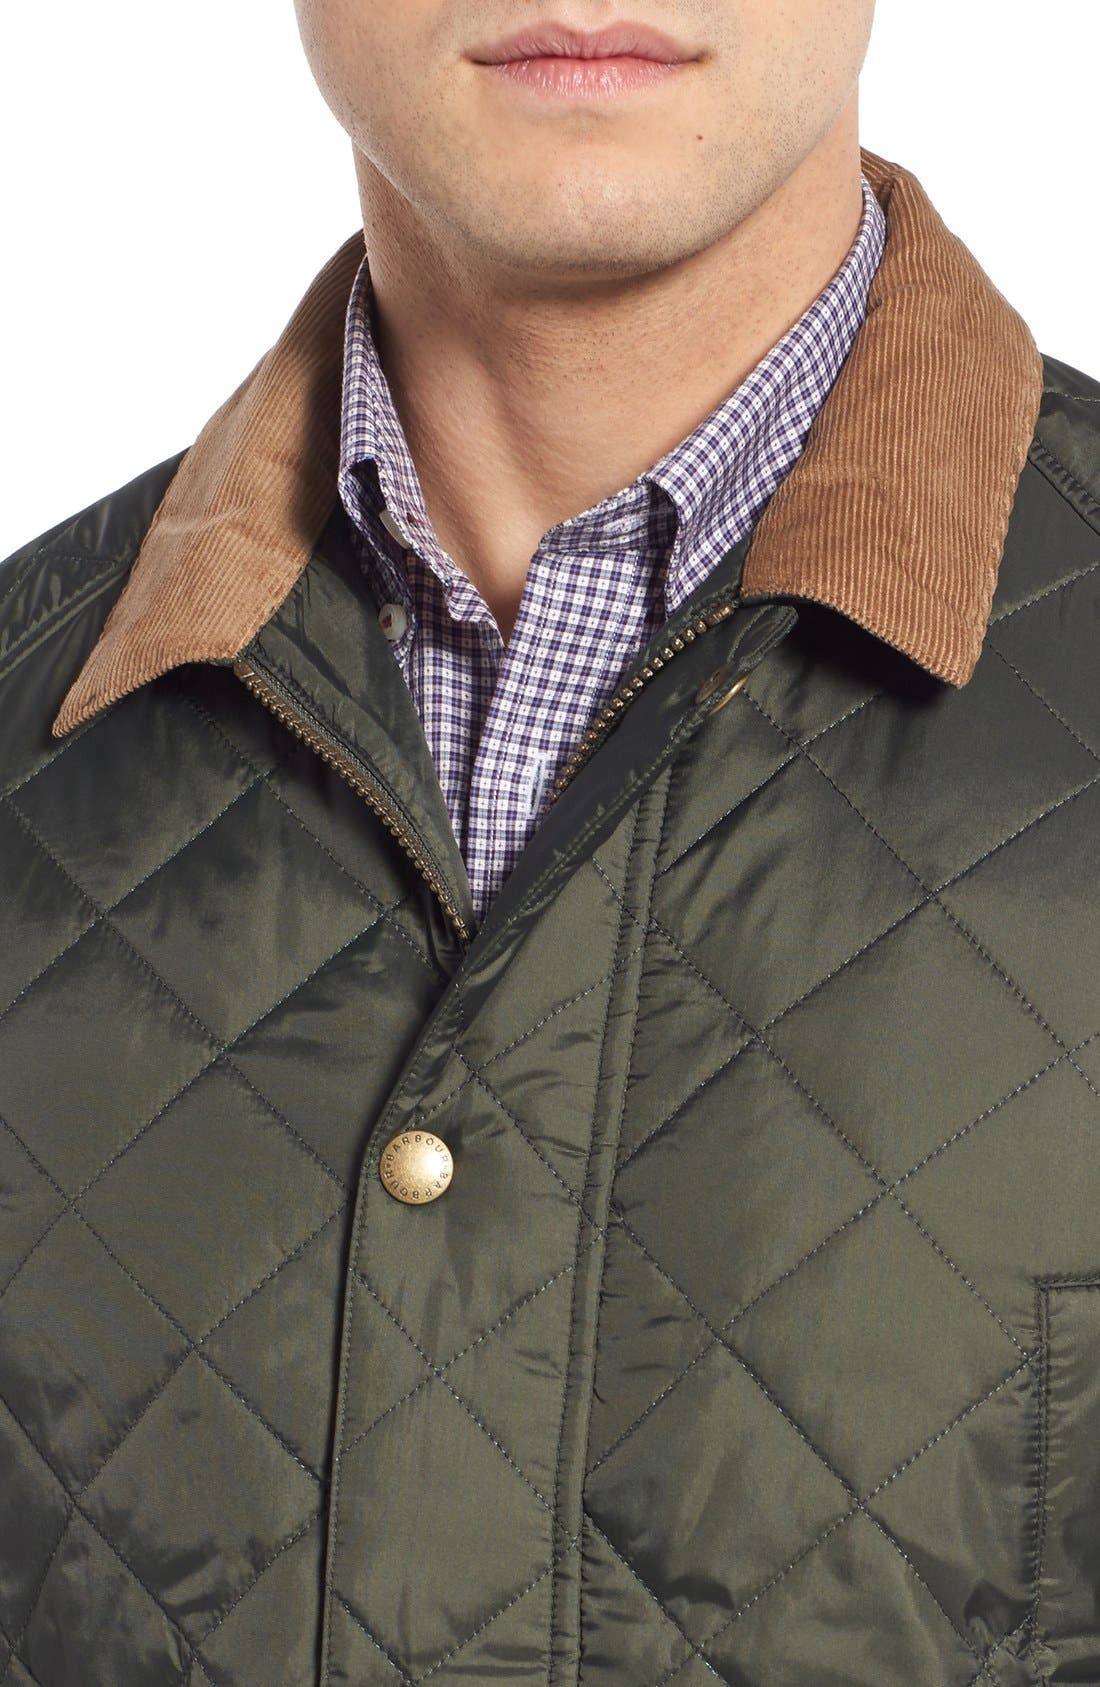 'Canterdale' Slim Fit Water-Resistant Diamond Quilted Jacket,                             Alternate thumbnail 10, color,                             305